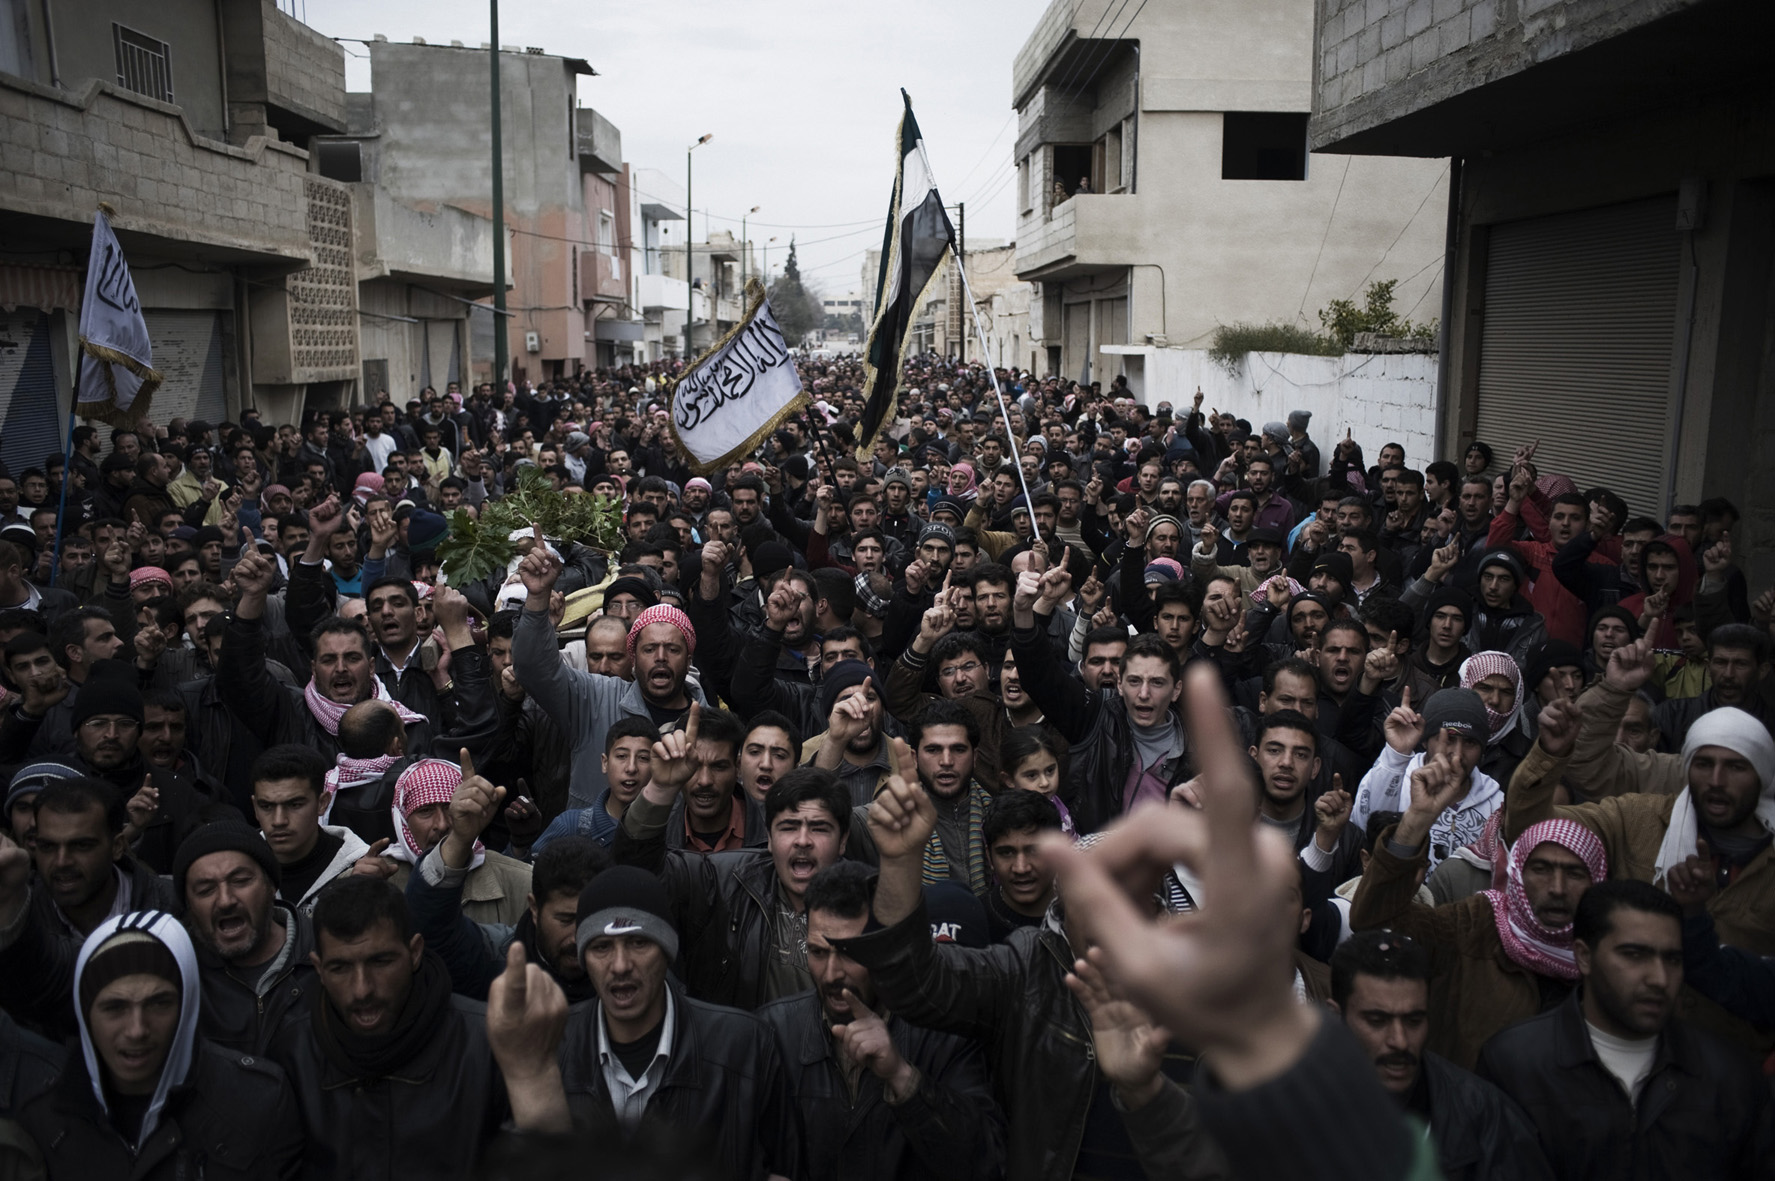 Alessio Romenzi. Al Qsair. Thousands attend the funeral of the the three men kidnapped and tortured by shabiha (militias of the regime) during three days. The bodies were found  in a main street of Al  Qsair, on February 14, 2012.  Courtesy Alessio Romenzi